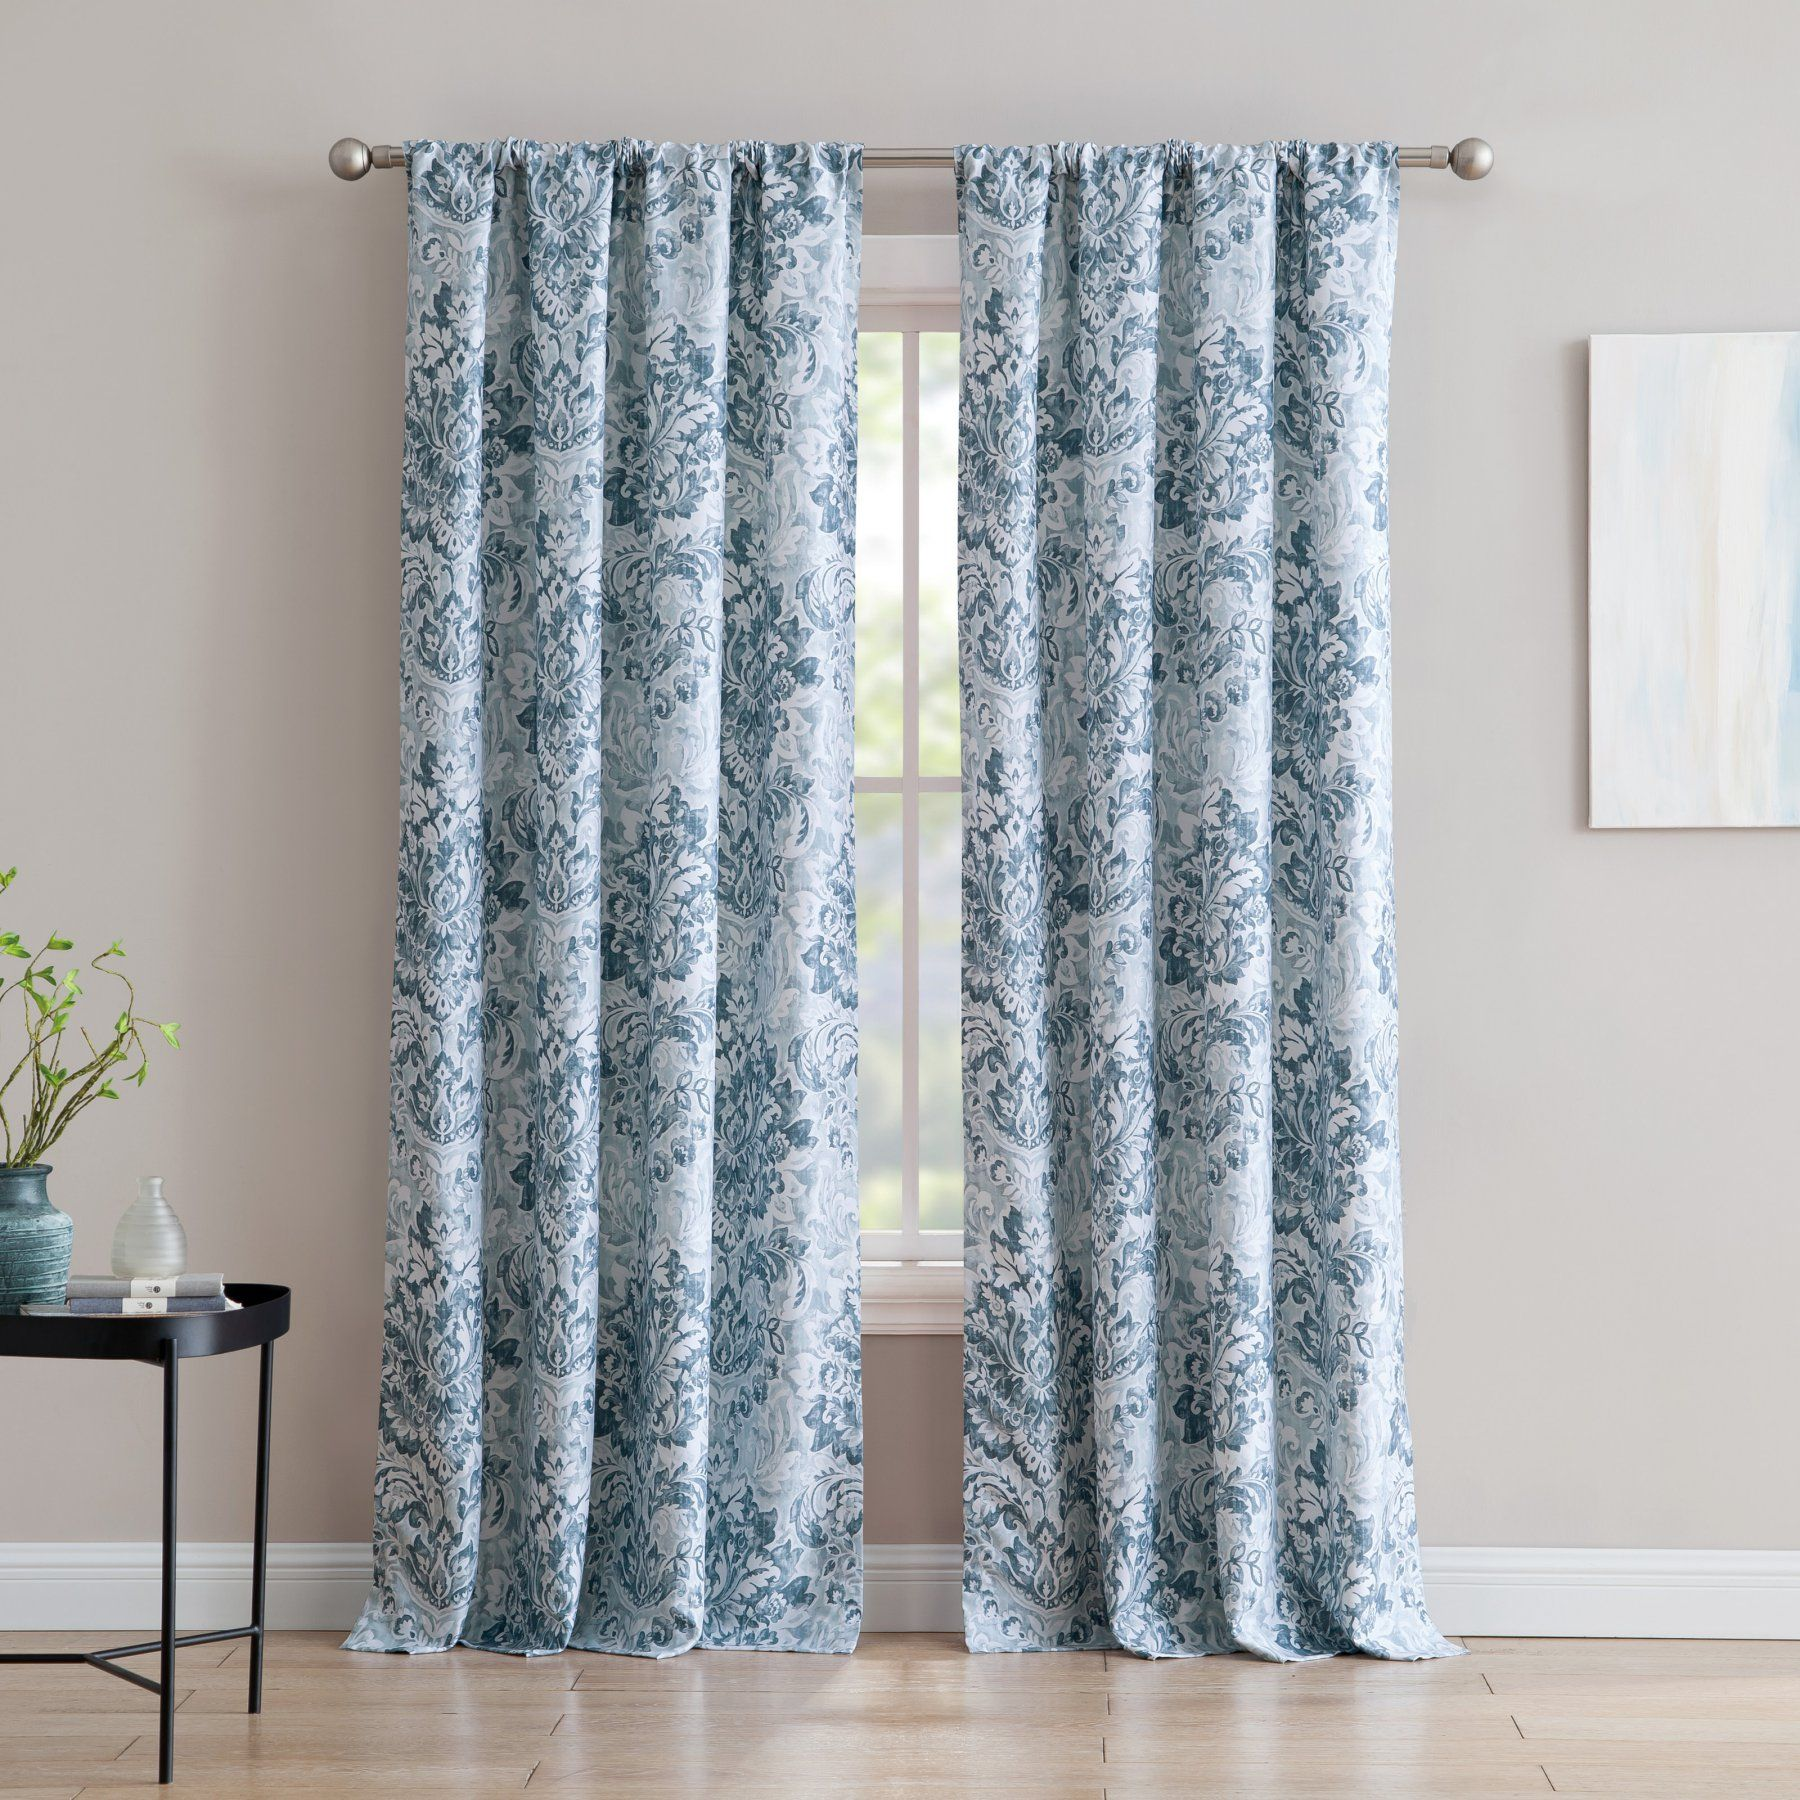 Inspired Surroundings An Damask 84 In Rod Pocket Curtain Panel